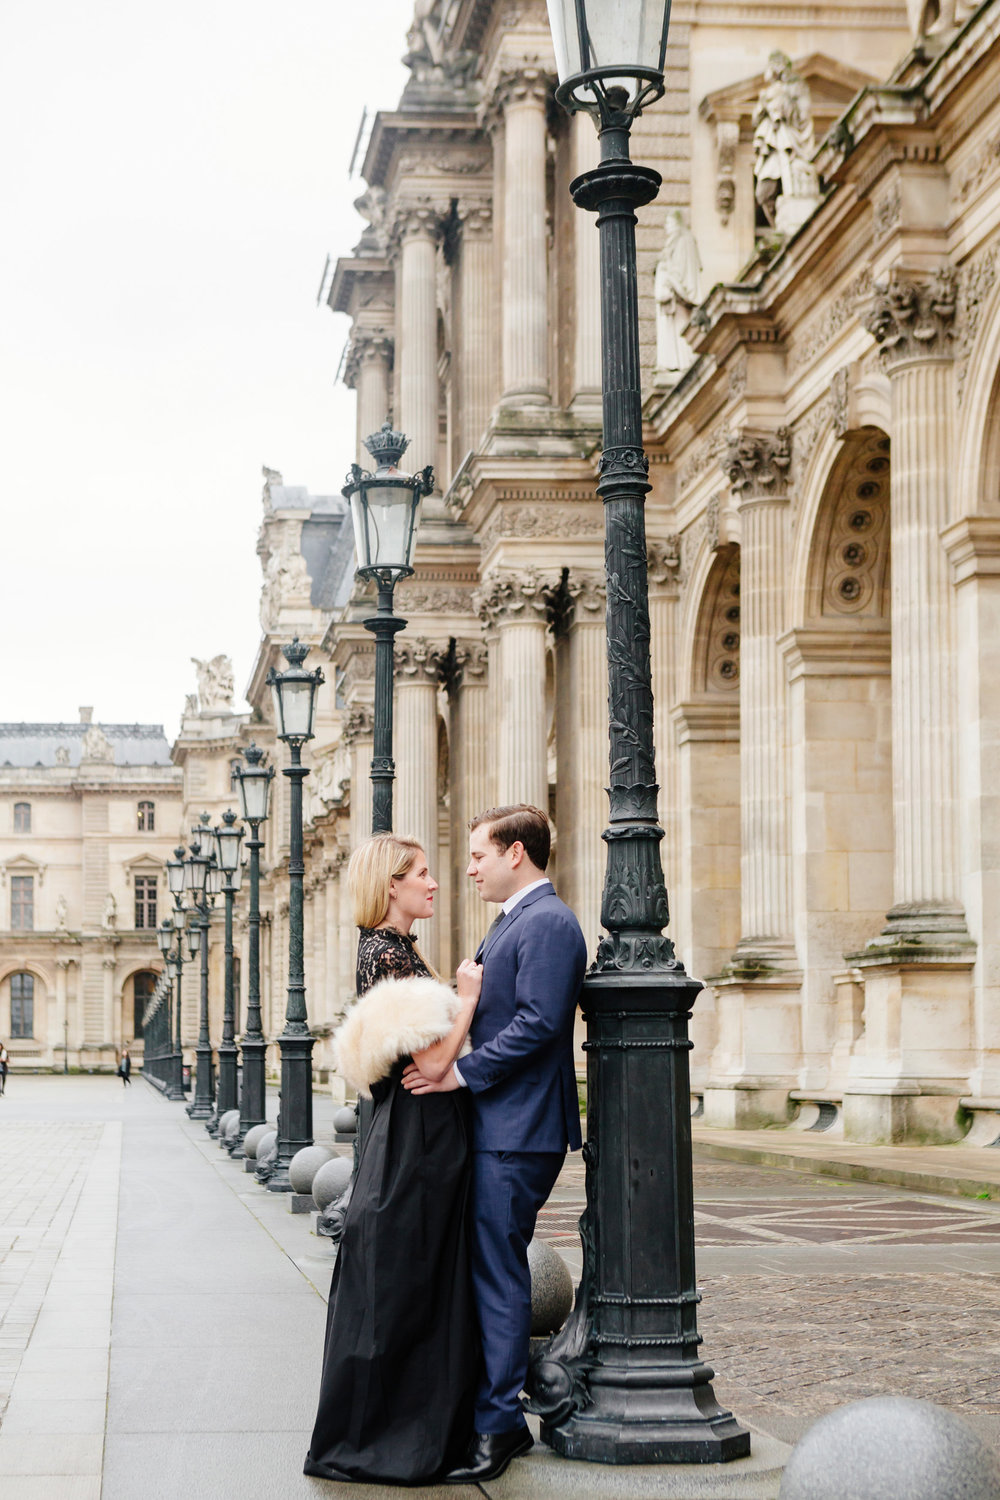 Paris vacation couple portrait standing in the courtyard of Louvre Museum captured by Paris Photographer Federico Guendel www.iheartparis.fr